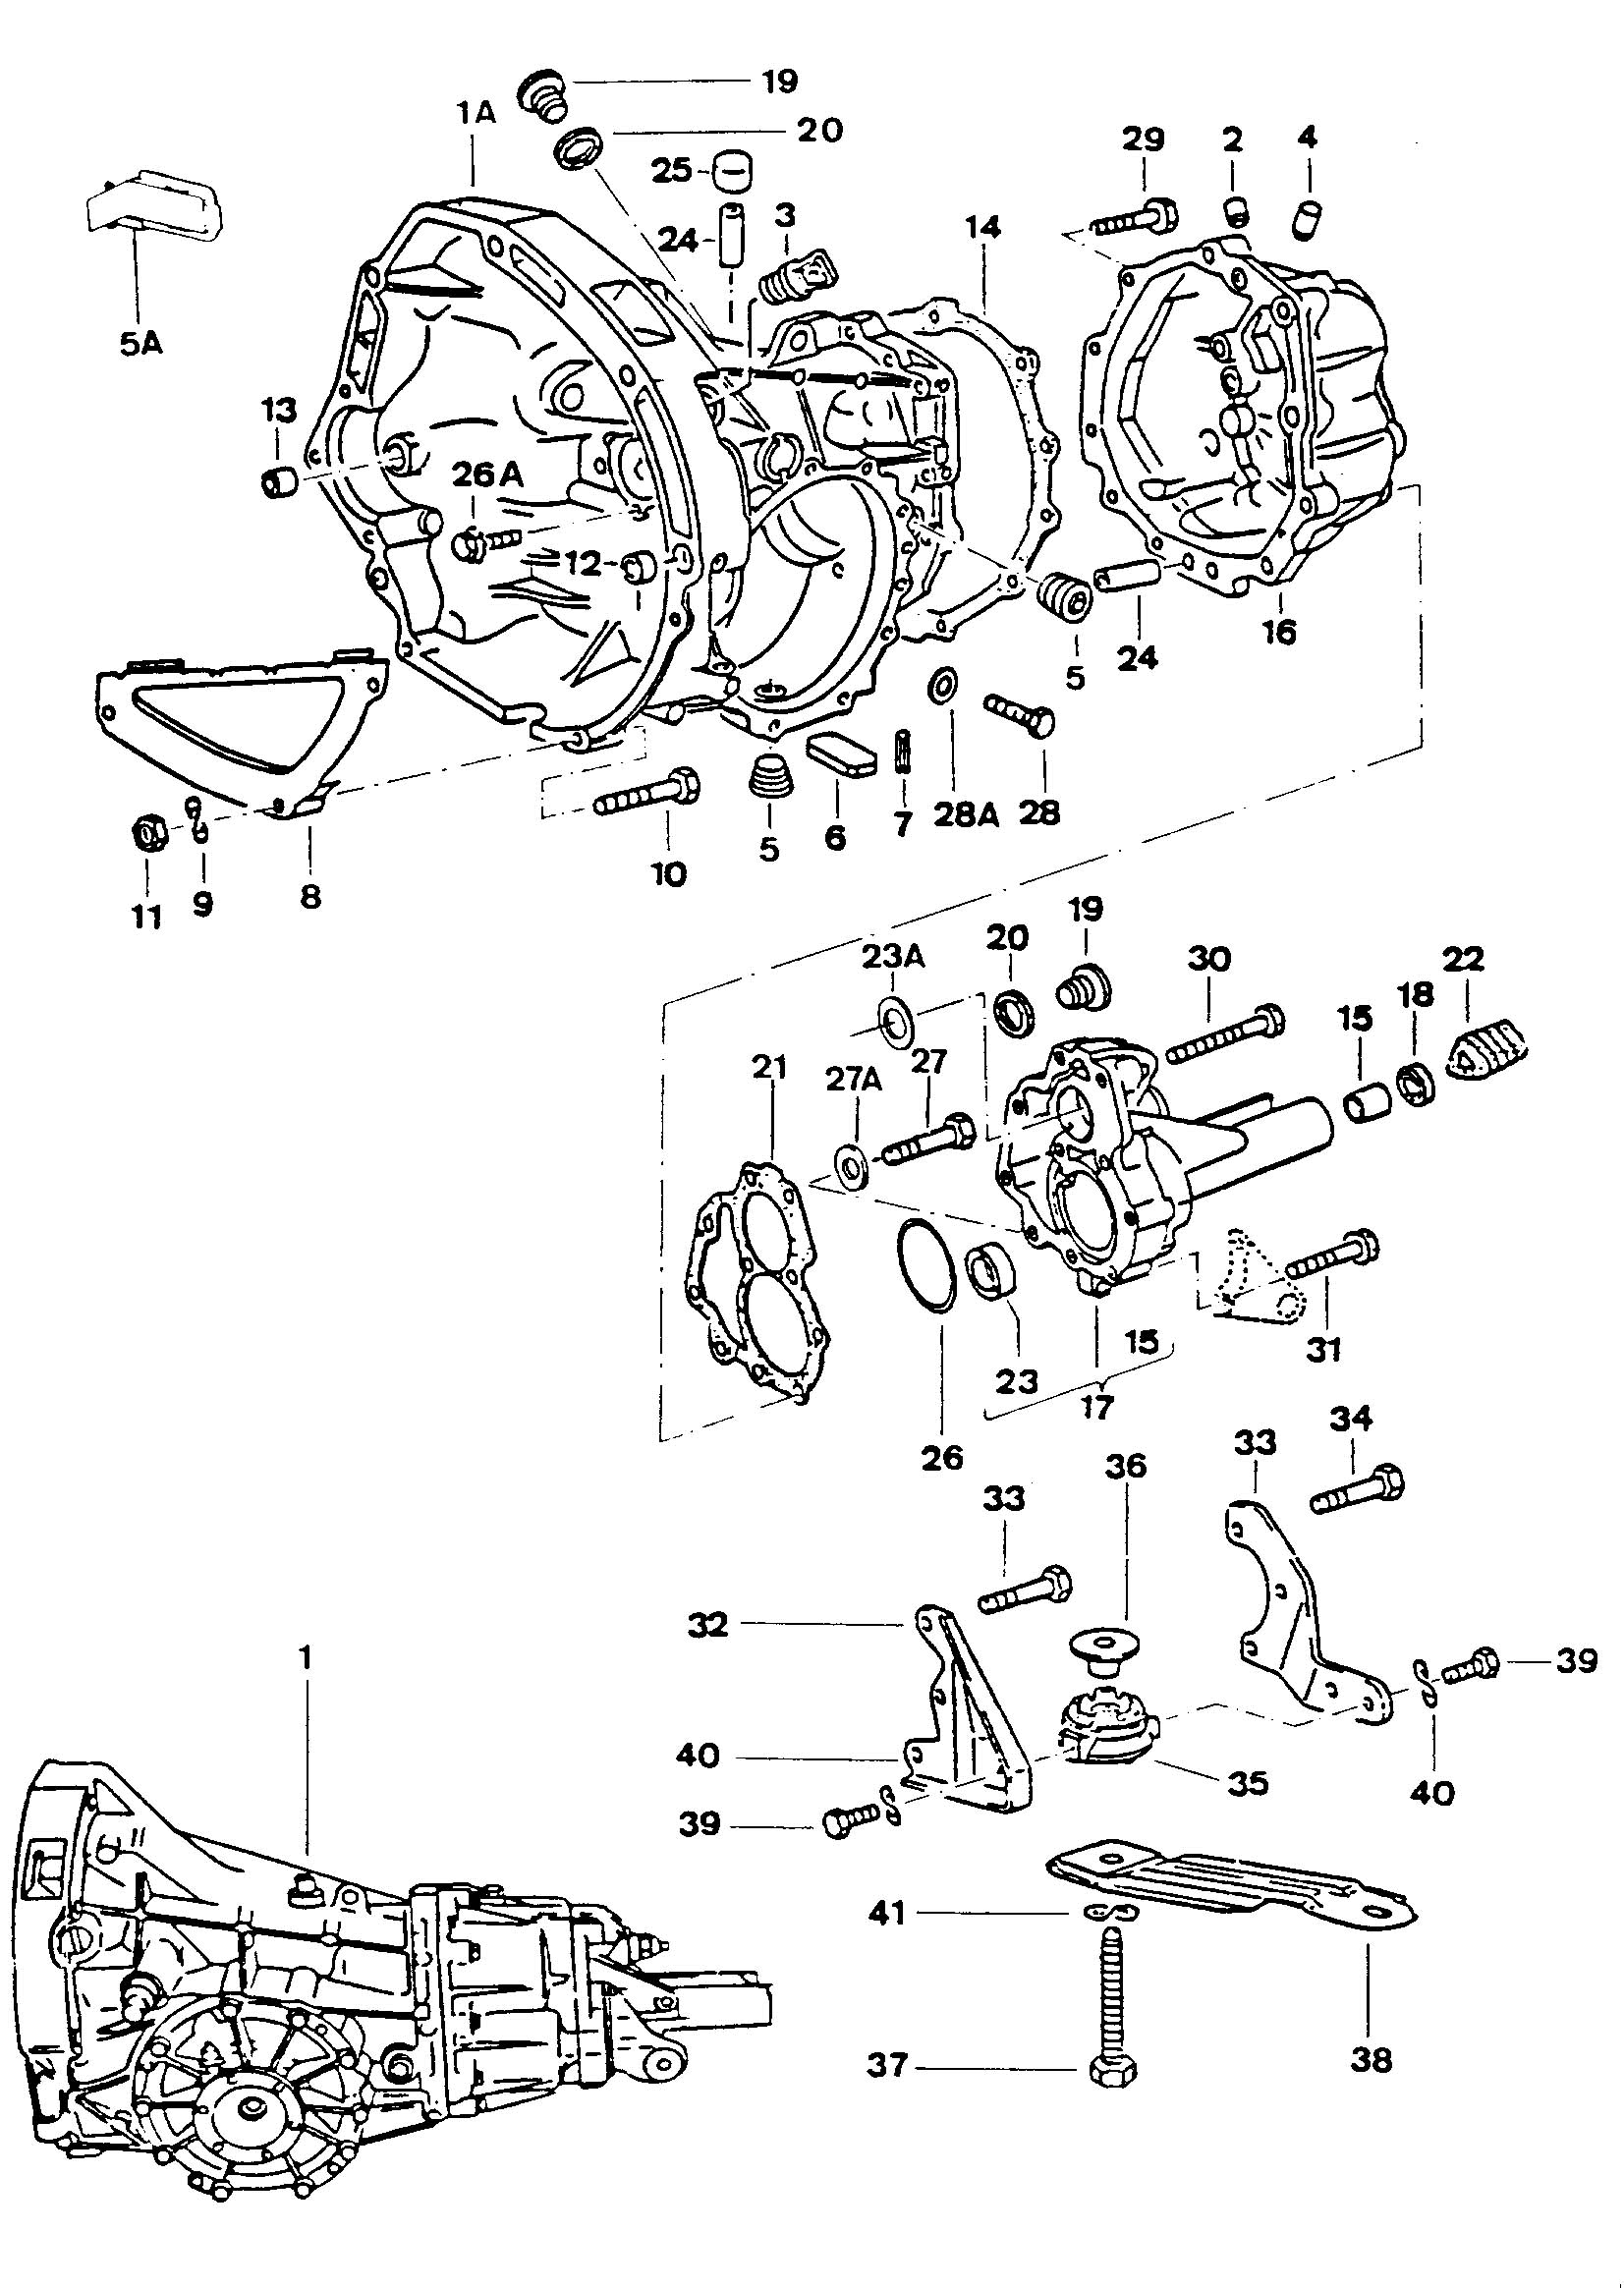 30263 92 Cabby Vacuum Line Question also Power Steering Pumps in addition P 0900c152802689b9 additionally This Is Boat Wiring Diagrams Download furthermore ShowAssembly. on 1990 volkswagen rabbit